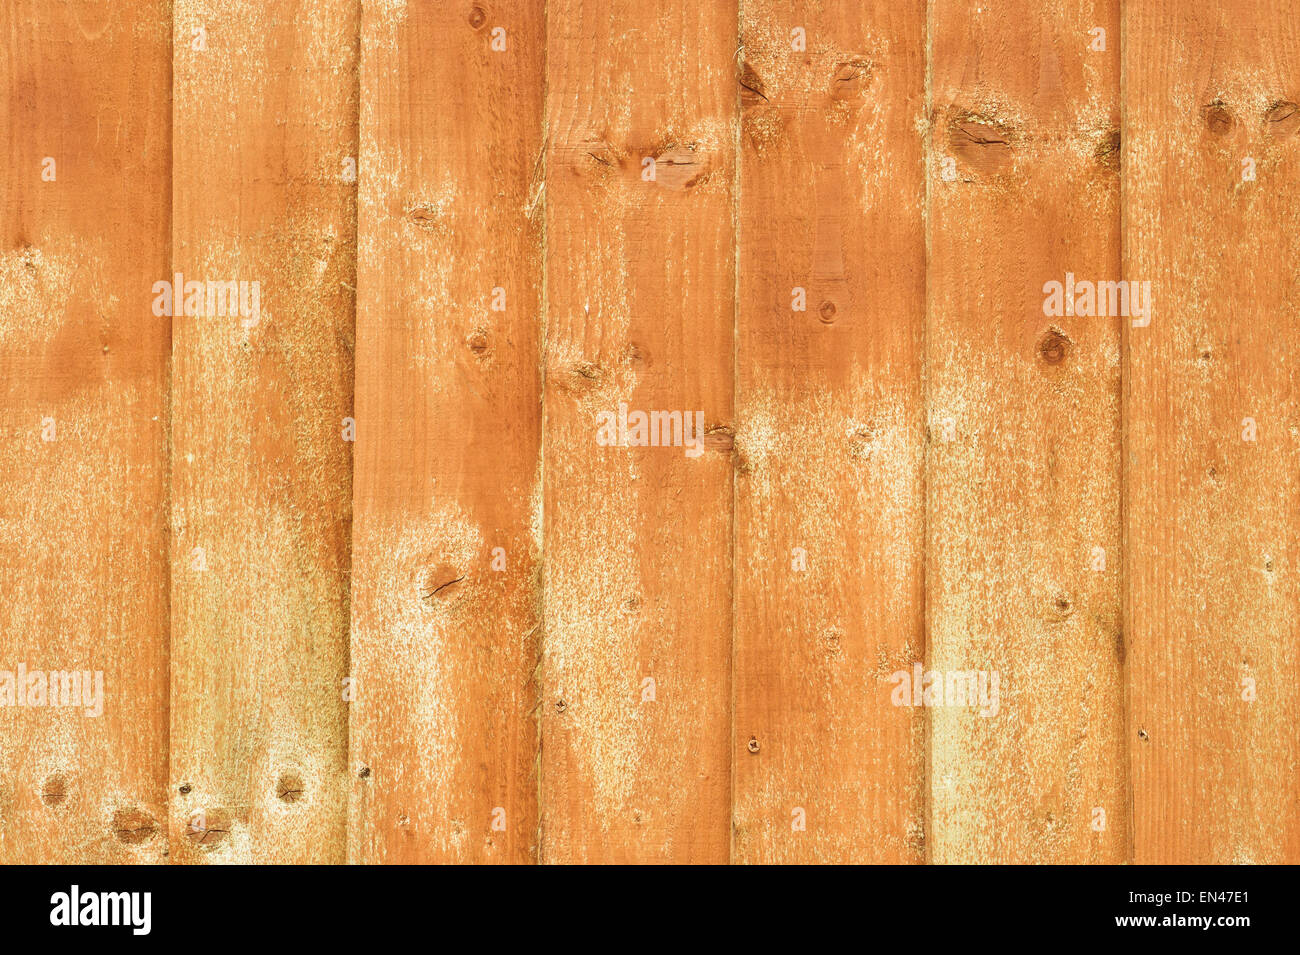 Wooden fence panels recently treated with wood preservative Stock Photo